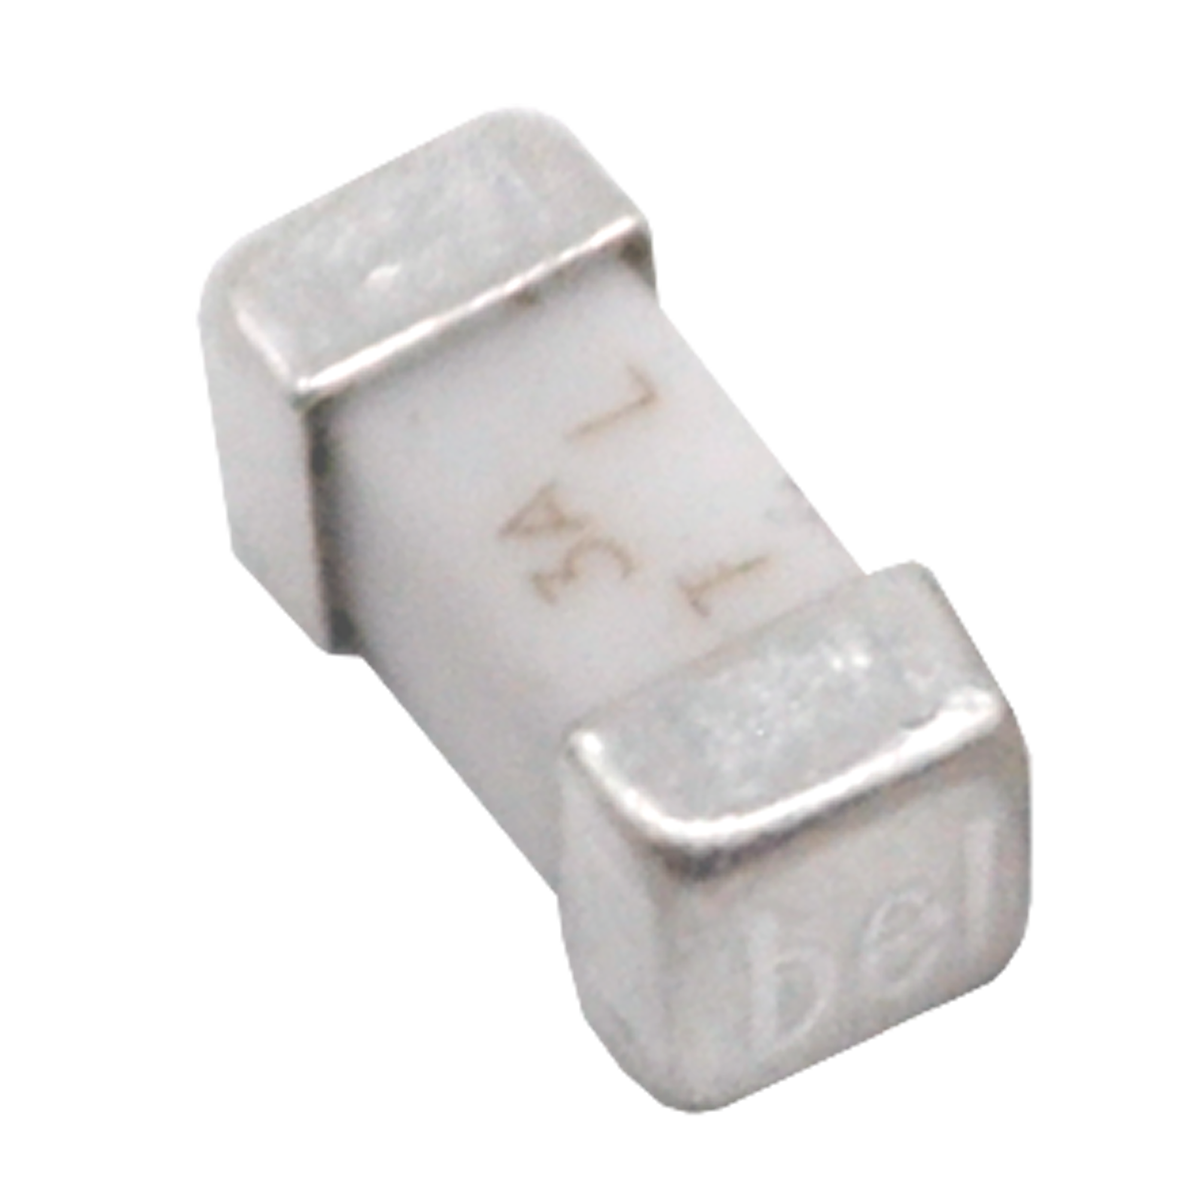 Bel Fuse-Circuit Protection Announces Slow Blow SMD Fuses